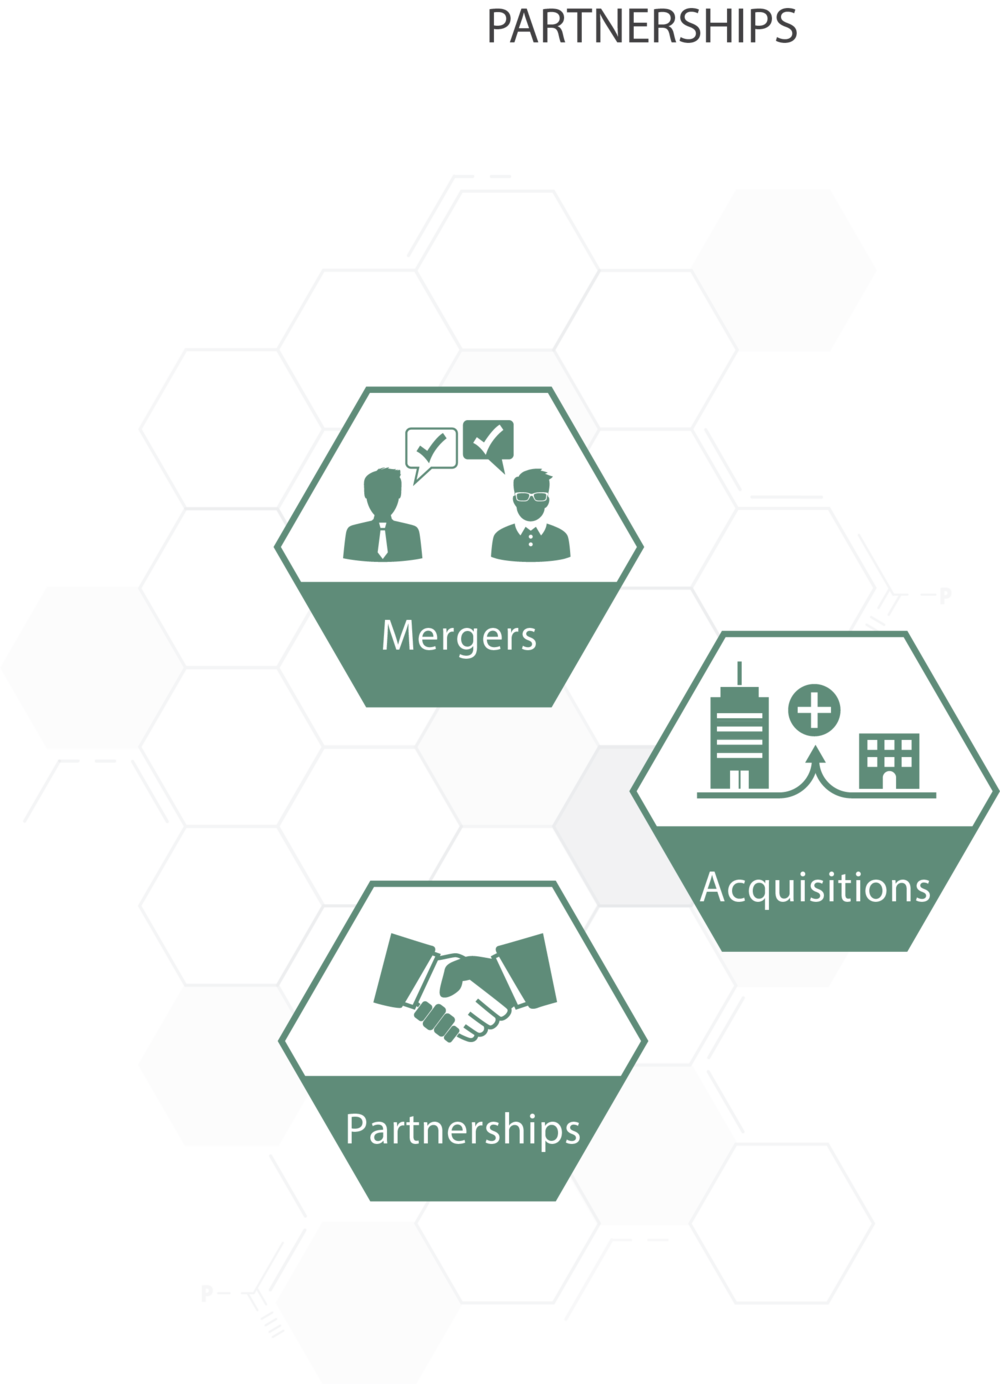 Whether partnering for growth or pursuing a company sale to realize shareholder value, we focus on assessing strategic fit, building trusted counterpart relationships, and negotiating the right structure for a mutually beneficial transaction.